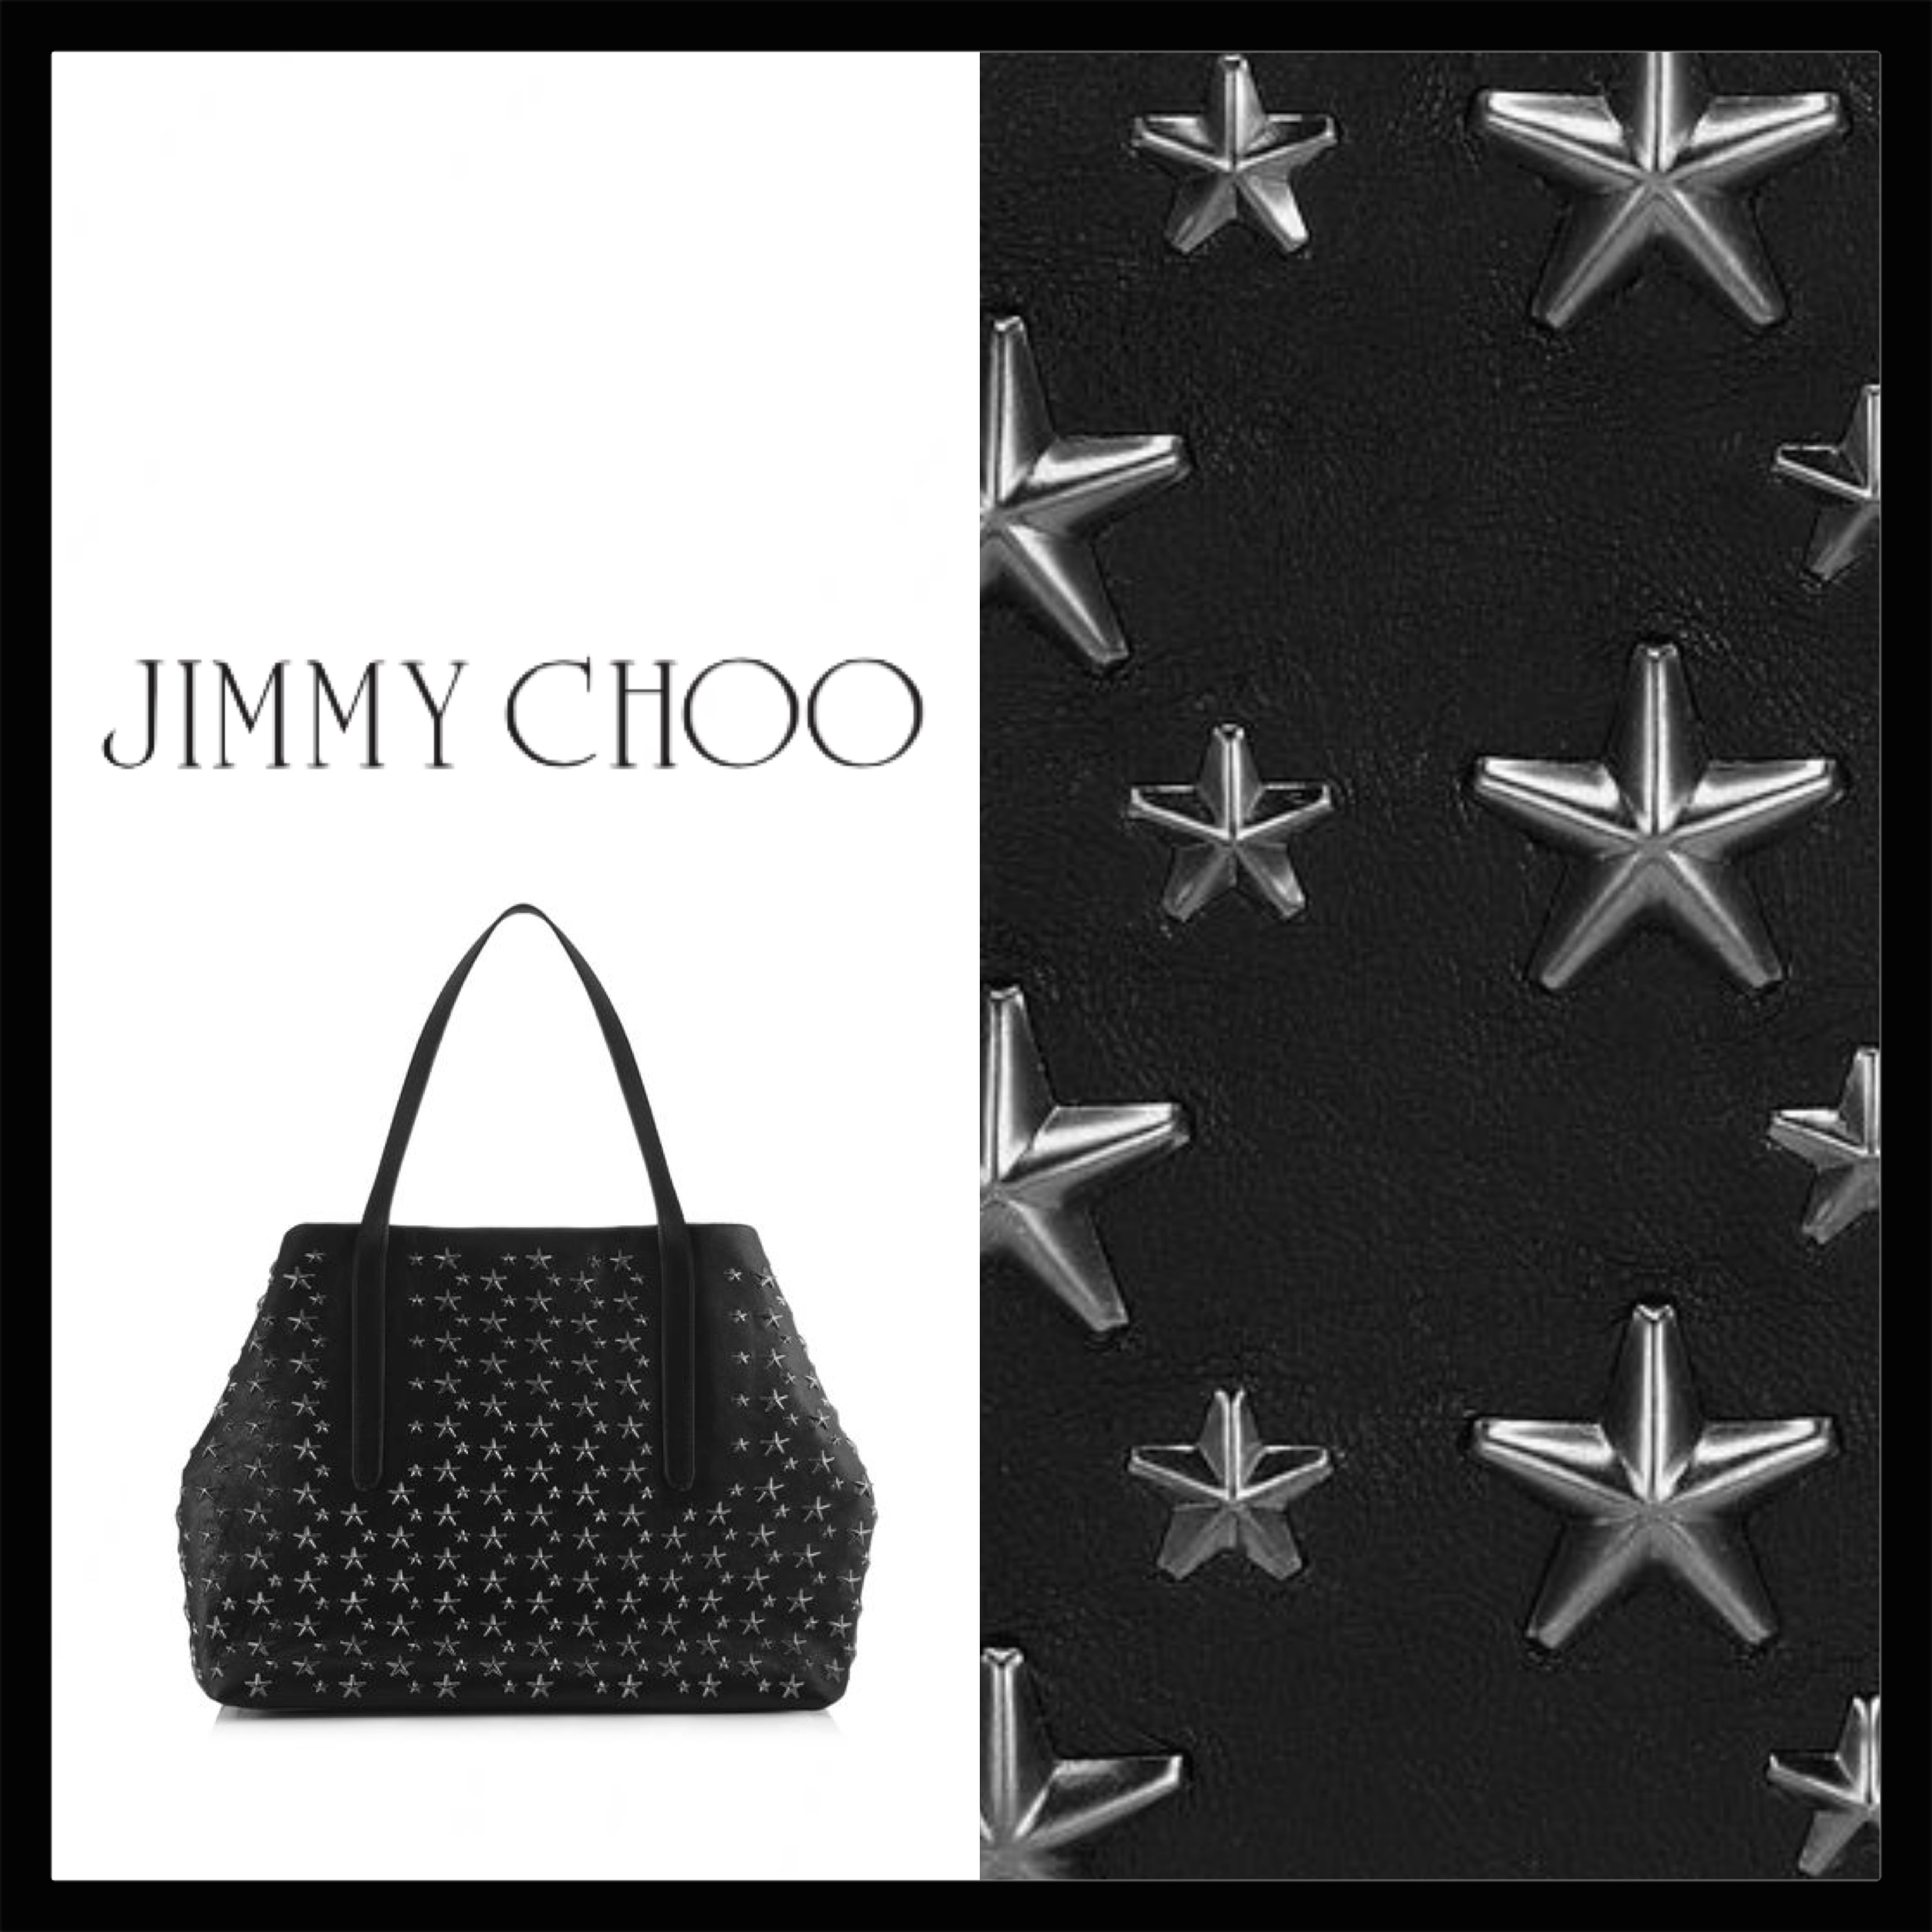 Jimmy Choo PIMLICO レザー・トートバッグ PIMLICOCST ☆